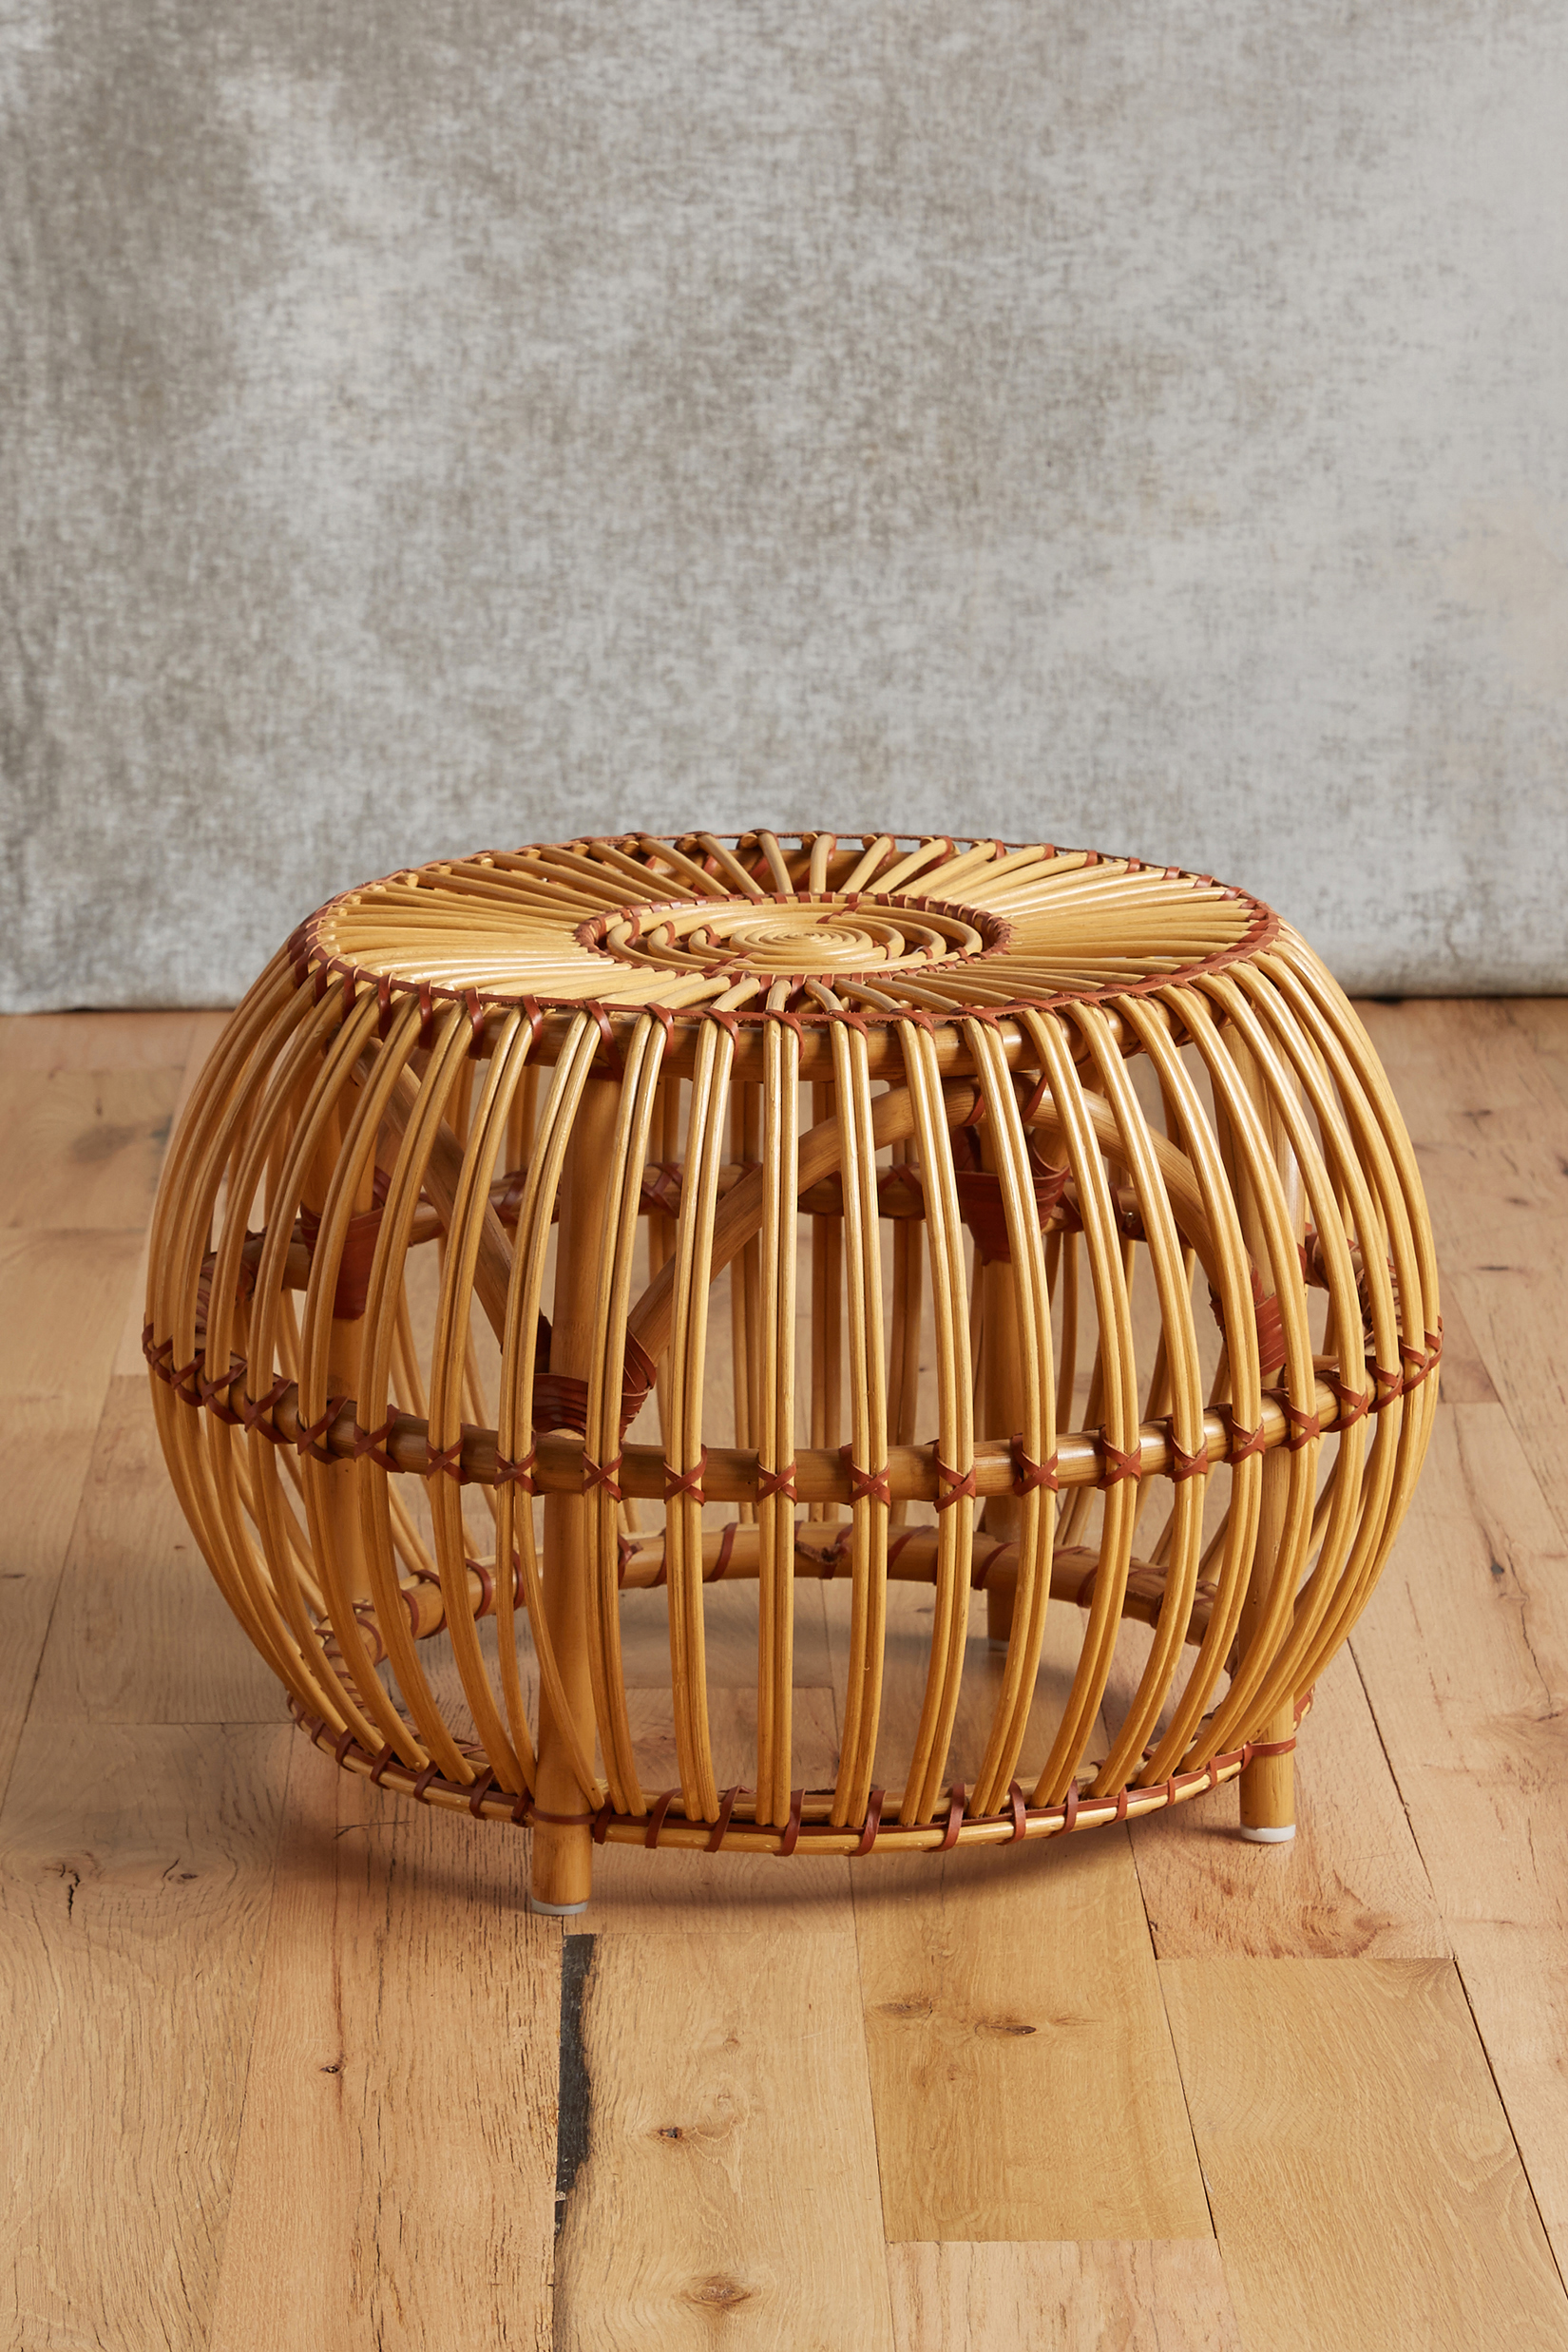 the susila rattan ottoman made of rattan reeds wrapped together with leather is intended